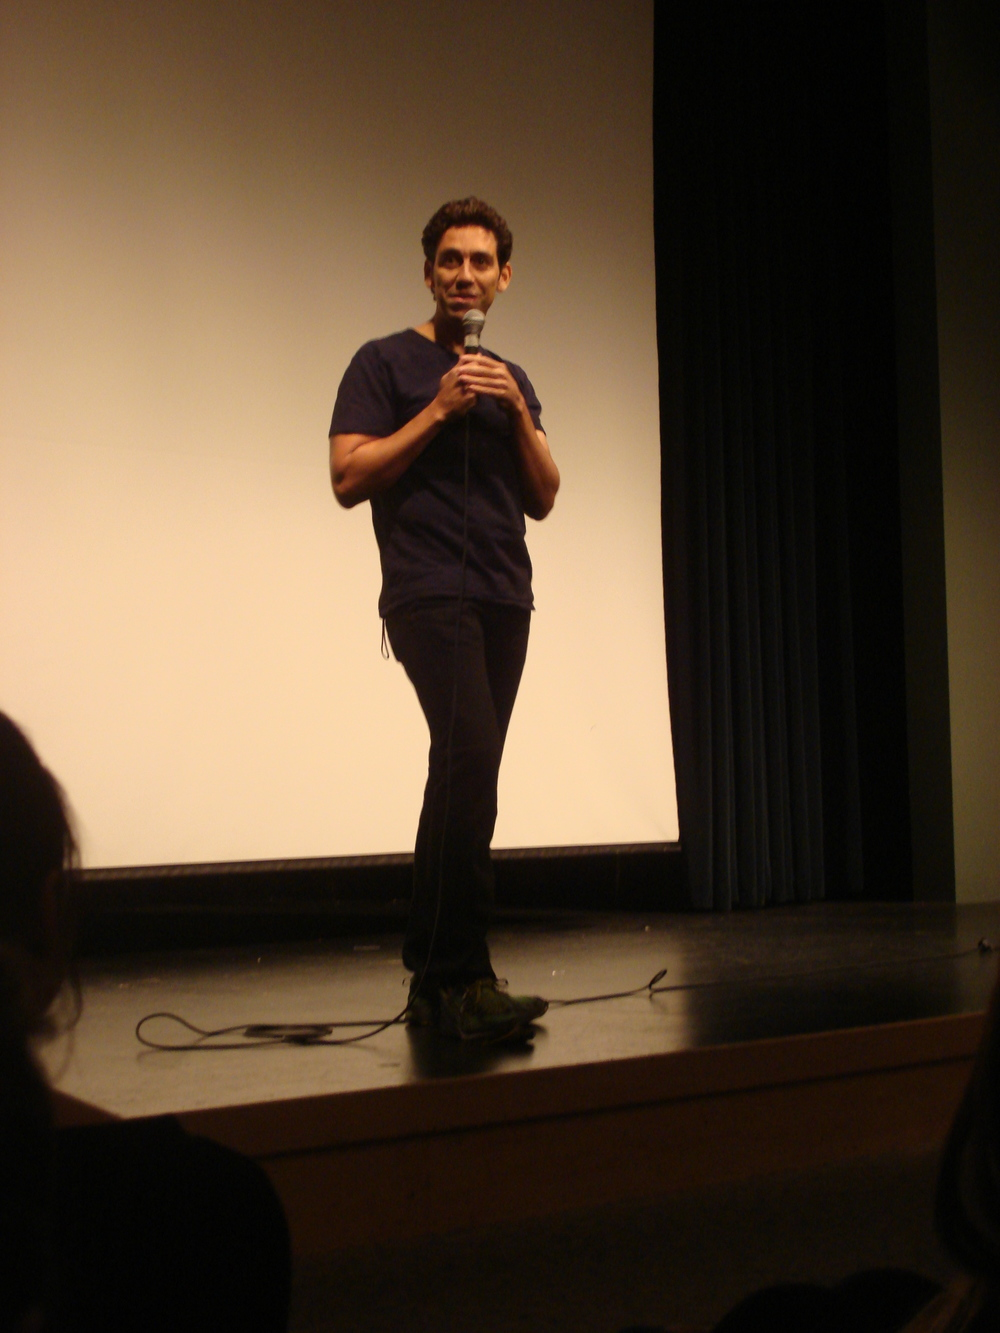 STAR // Michael Tragoutsis Comedian Bill Santiago performed at Ives 101, much to the delight of students who needed a break from school and studying.